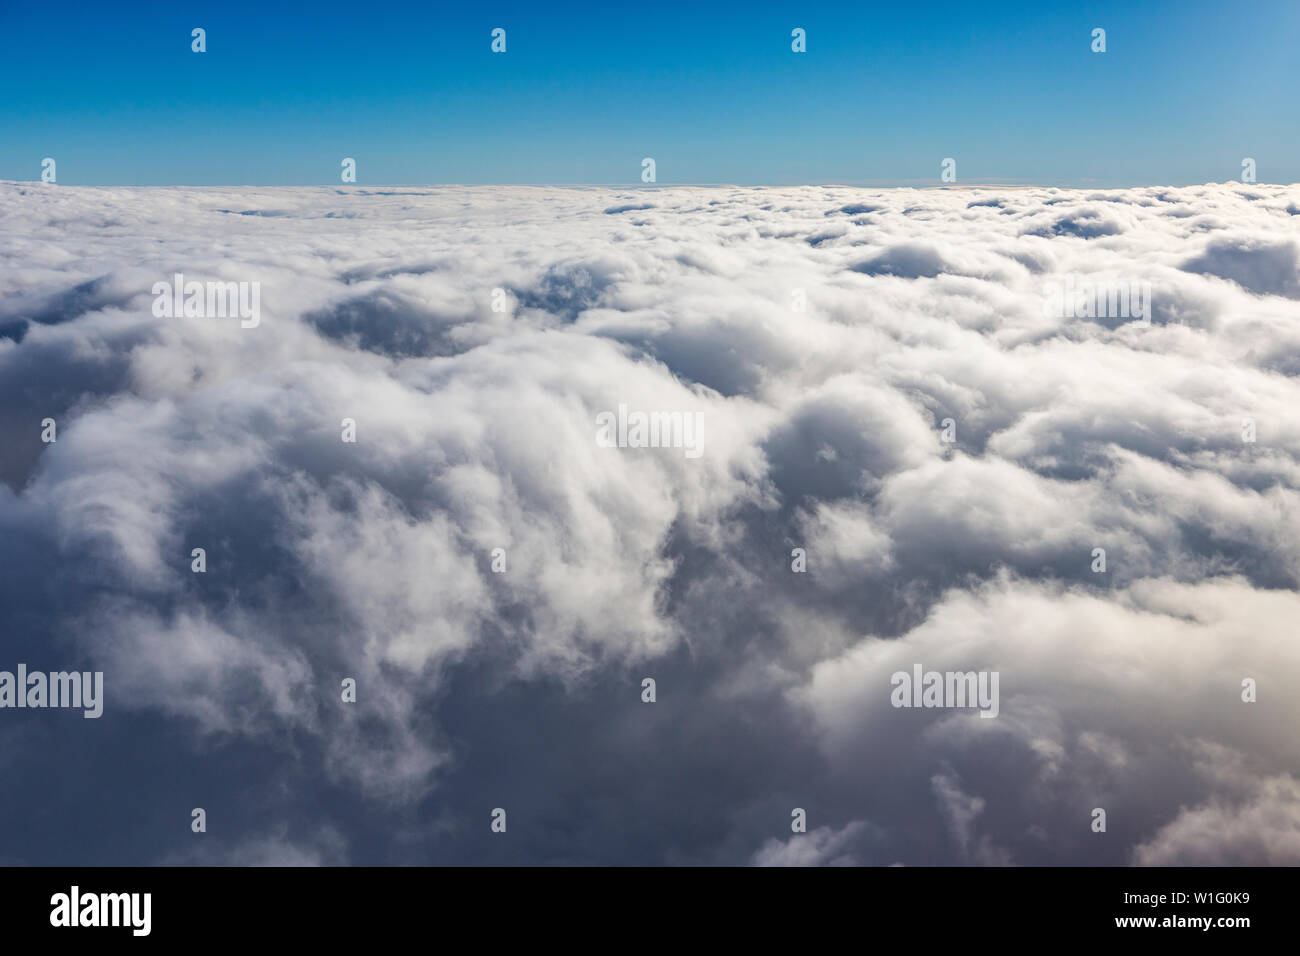 Clouds shortly before landing at svalbard, Artic, Norway - Stock Image